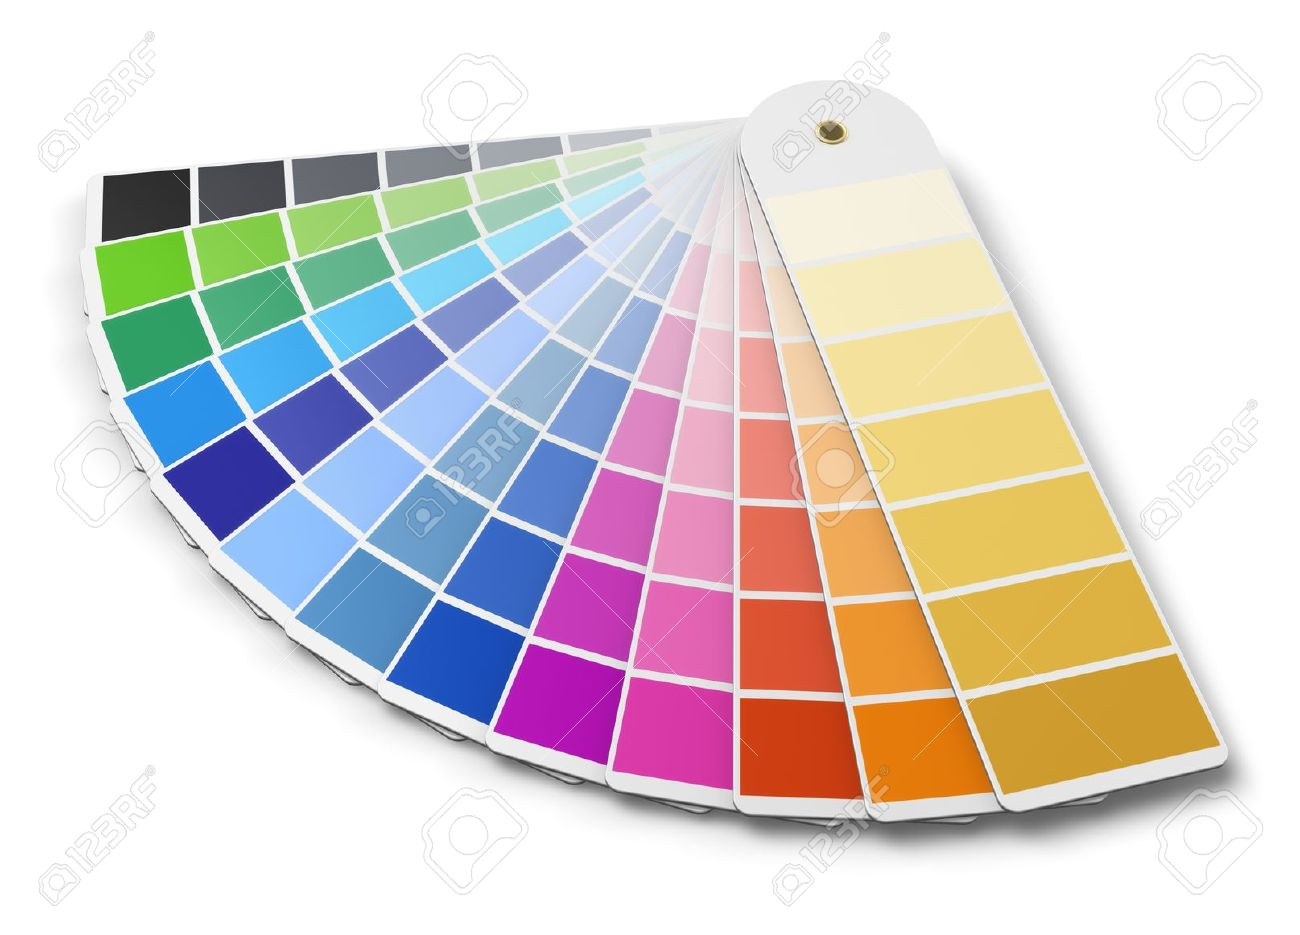 Pantone Photos Pictures Royalty Free Pantone Images And – Sample Pantone Color Chart